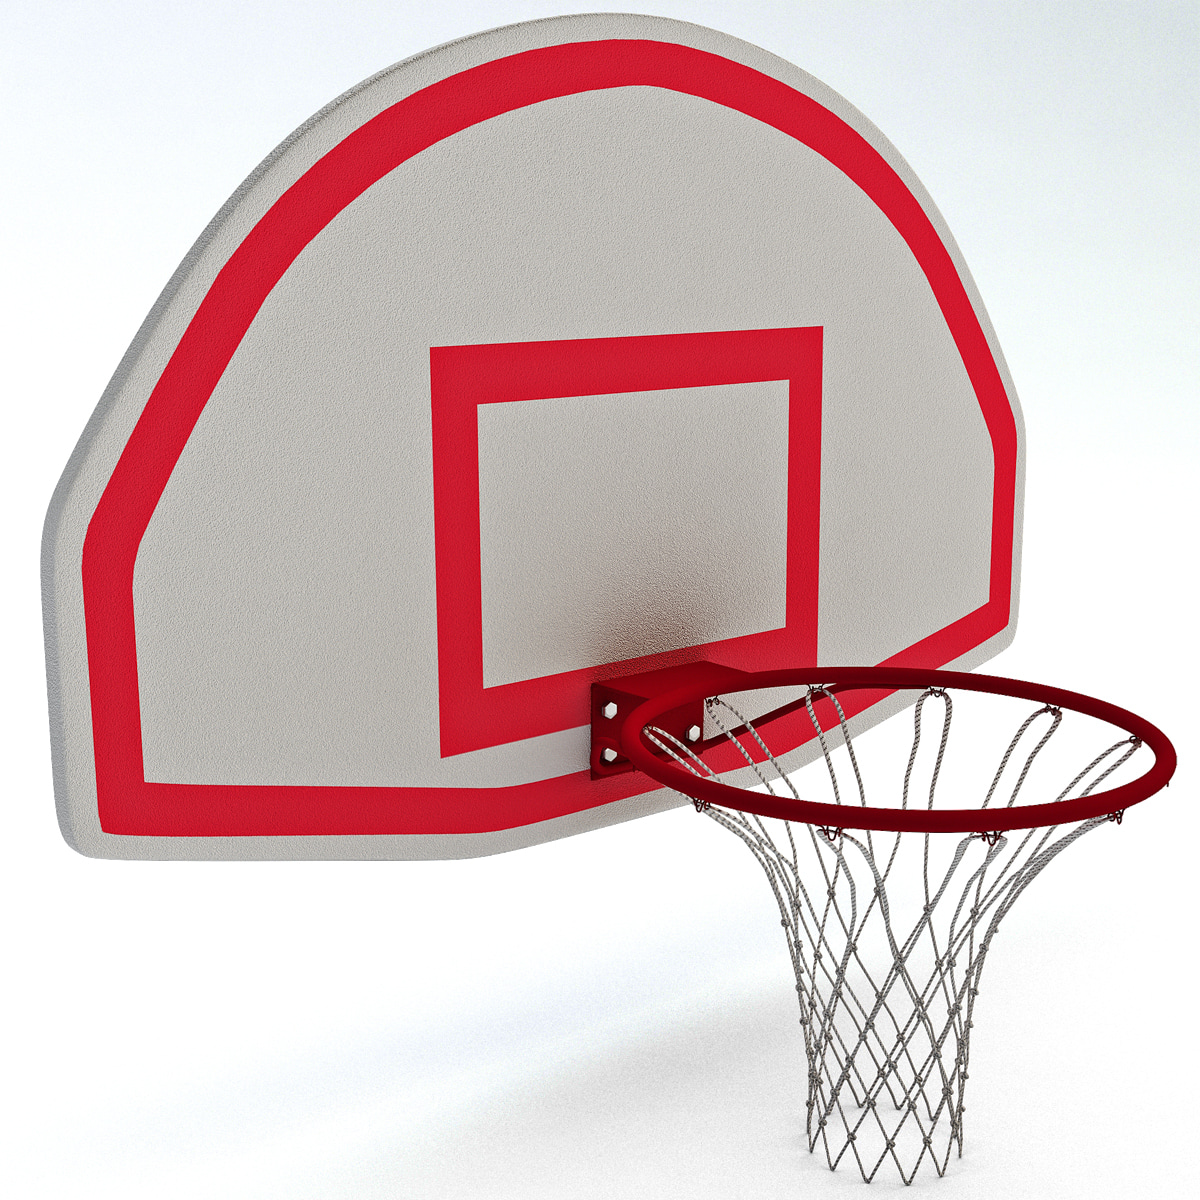 STL Finder | 3D models for basketball hoop